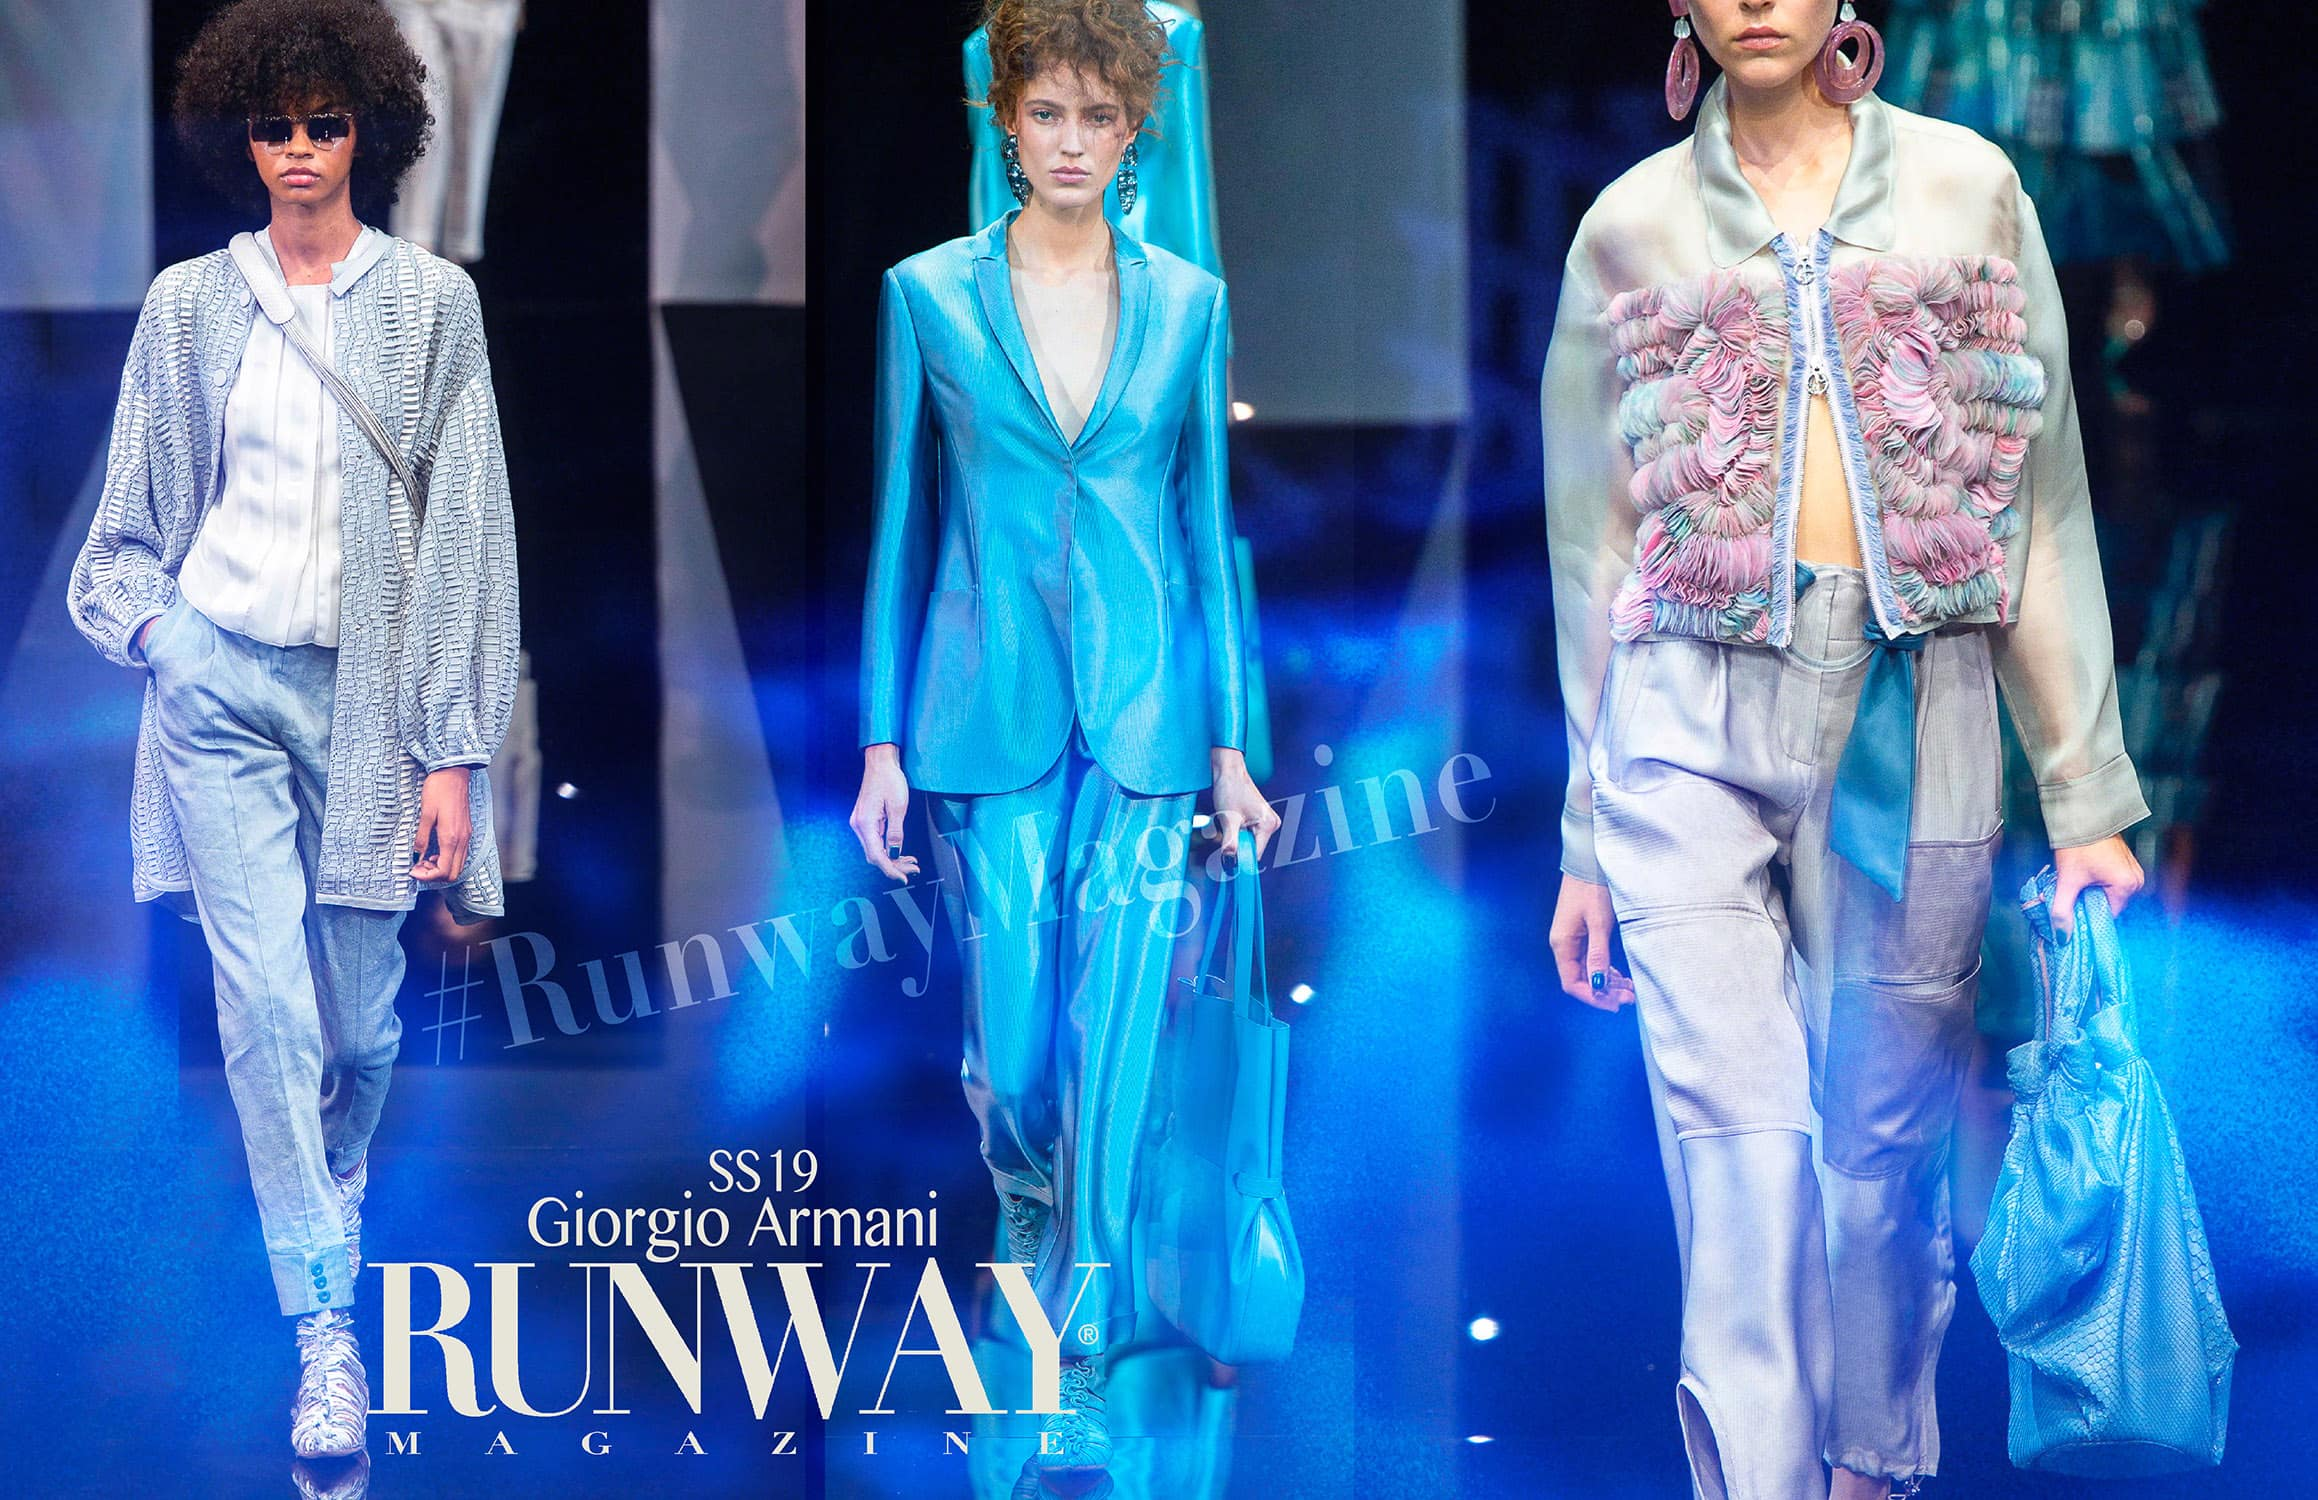 Giorgio Armani Spring Summer 2019 Milan Fashion Week by RUNWAY MAGAZINE